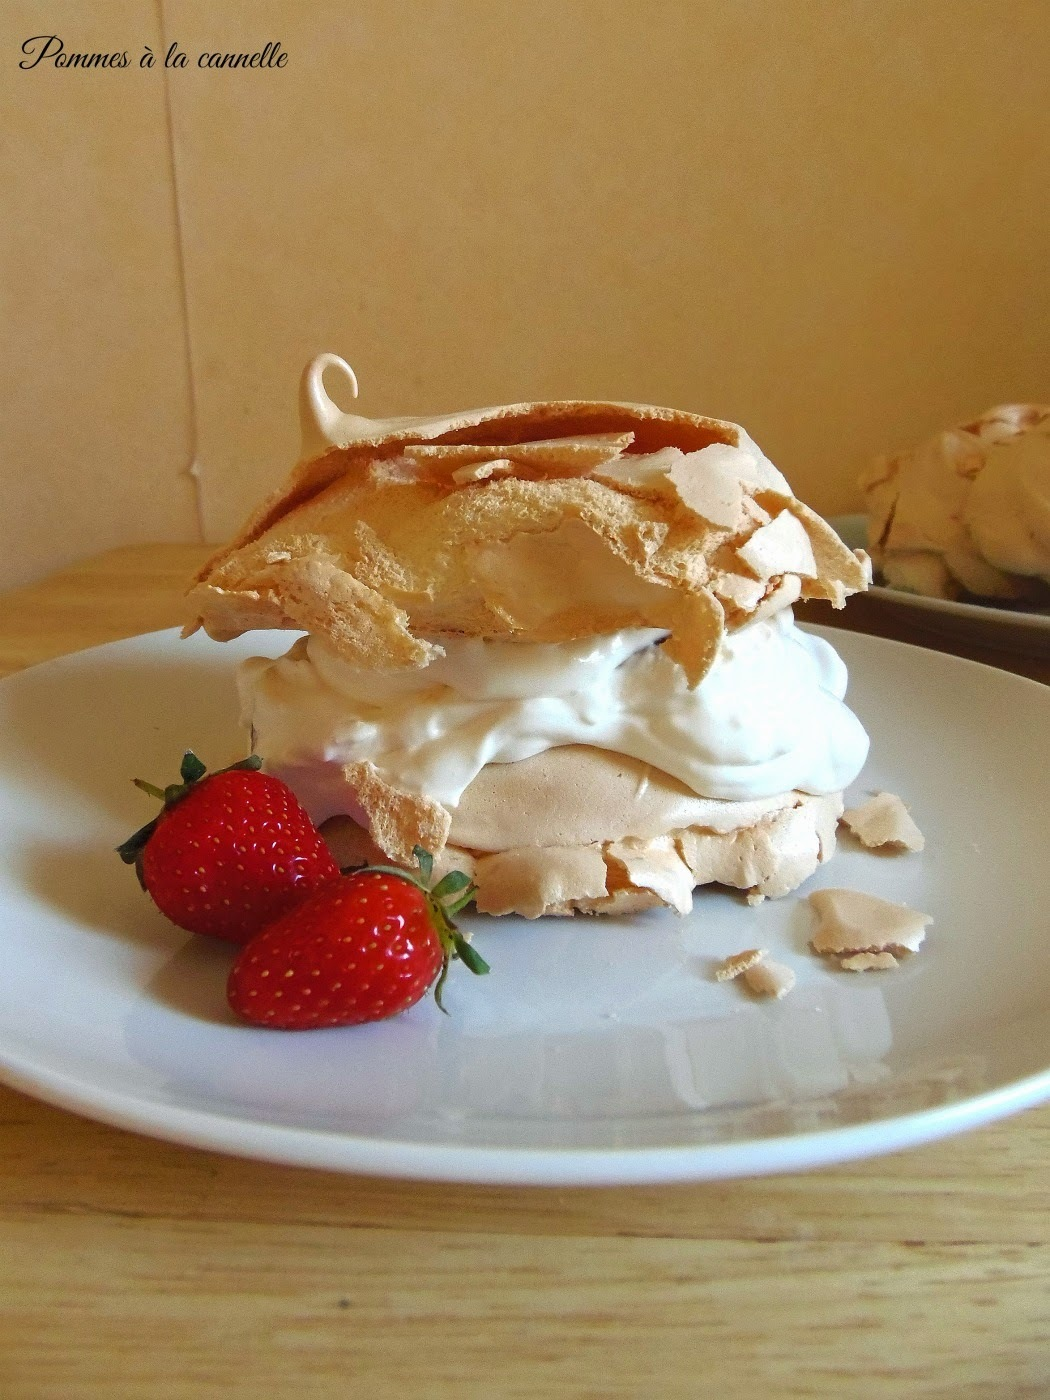 Deser bezowy z kremem mascarpone/Meringue dessert with mascarpone cream